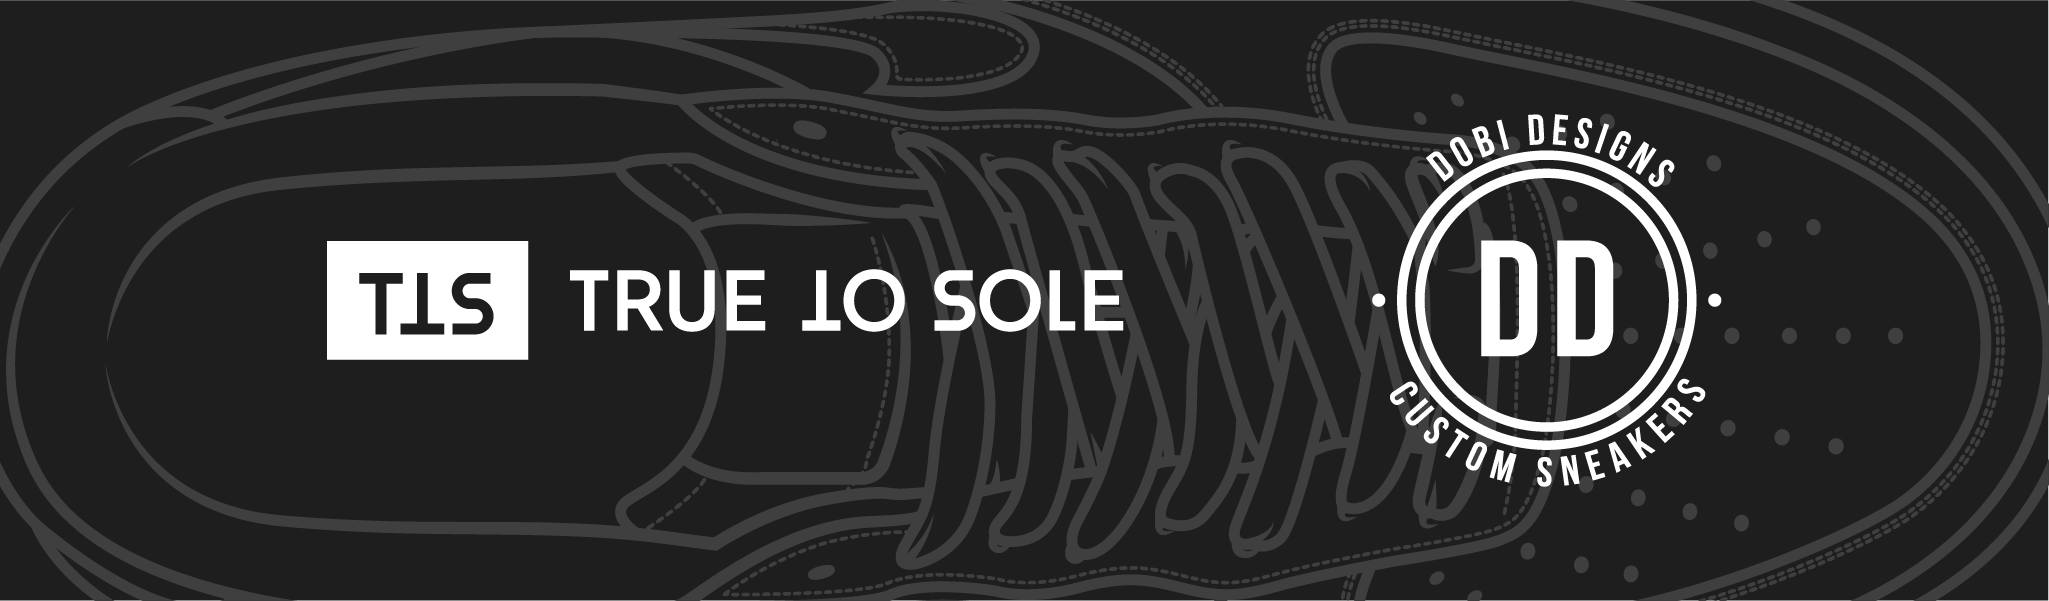 True-to-Sole-Custom-Air-Force-1-Giveaway-Footer